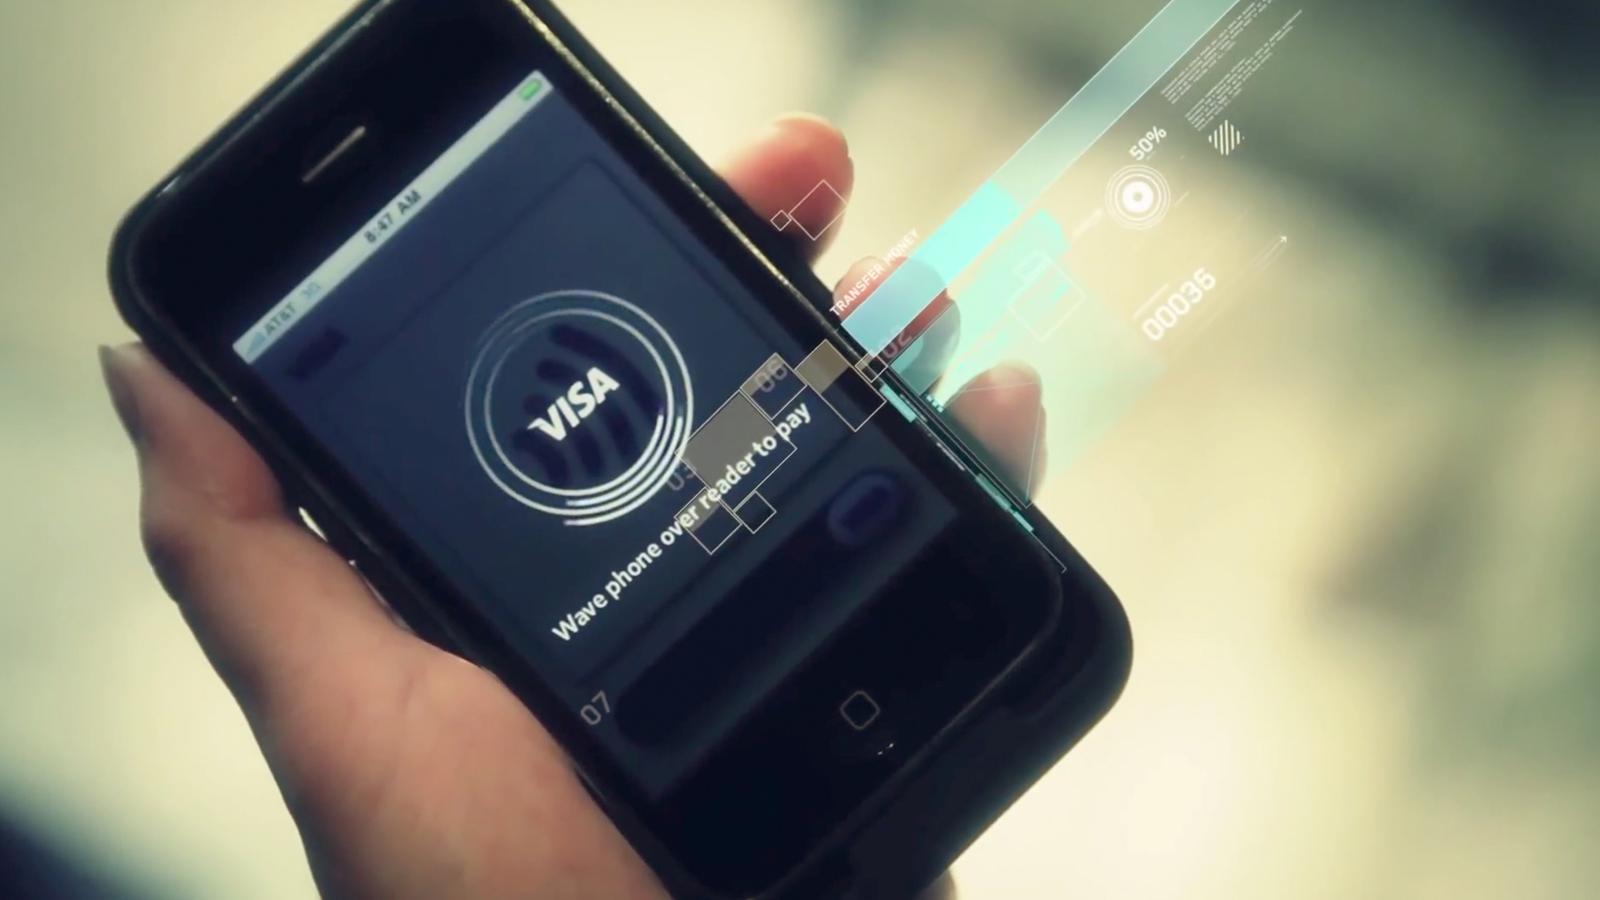 Closeup of a hand holding a smartphone displaying 'Visa' and the phrase 'Wave phone over reader.'